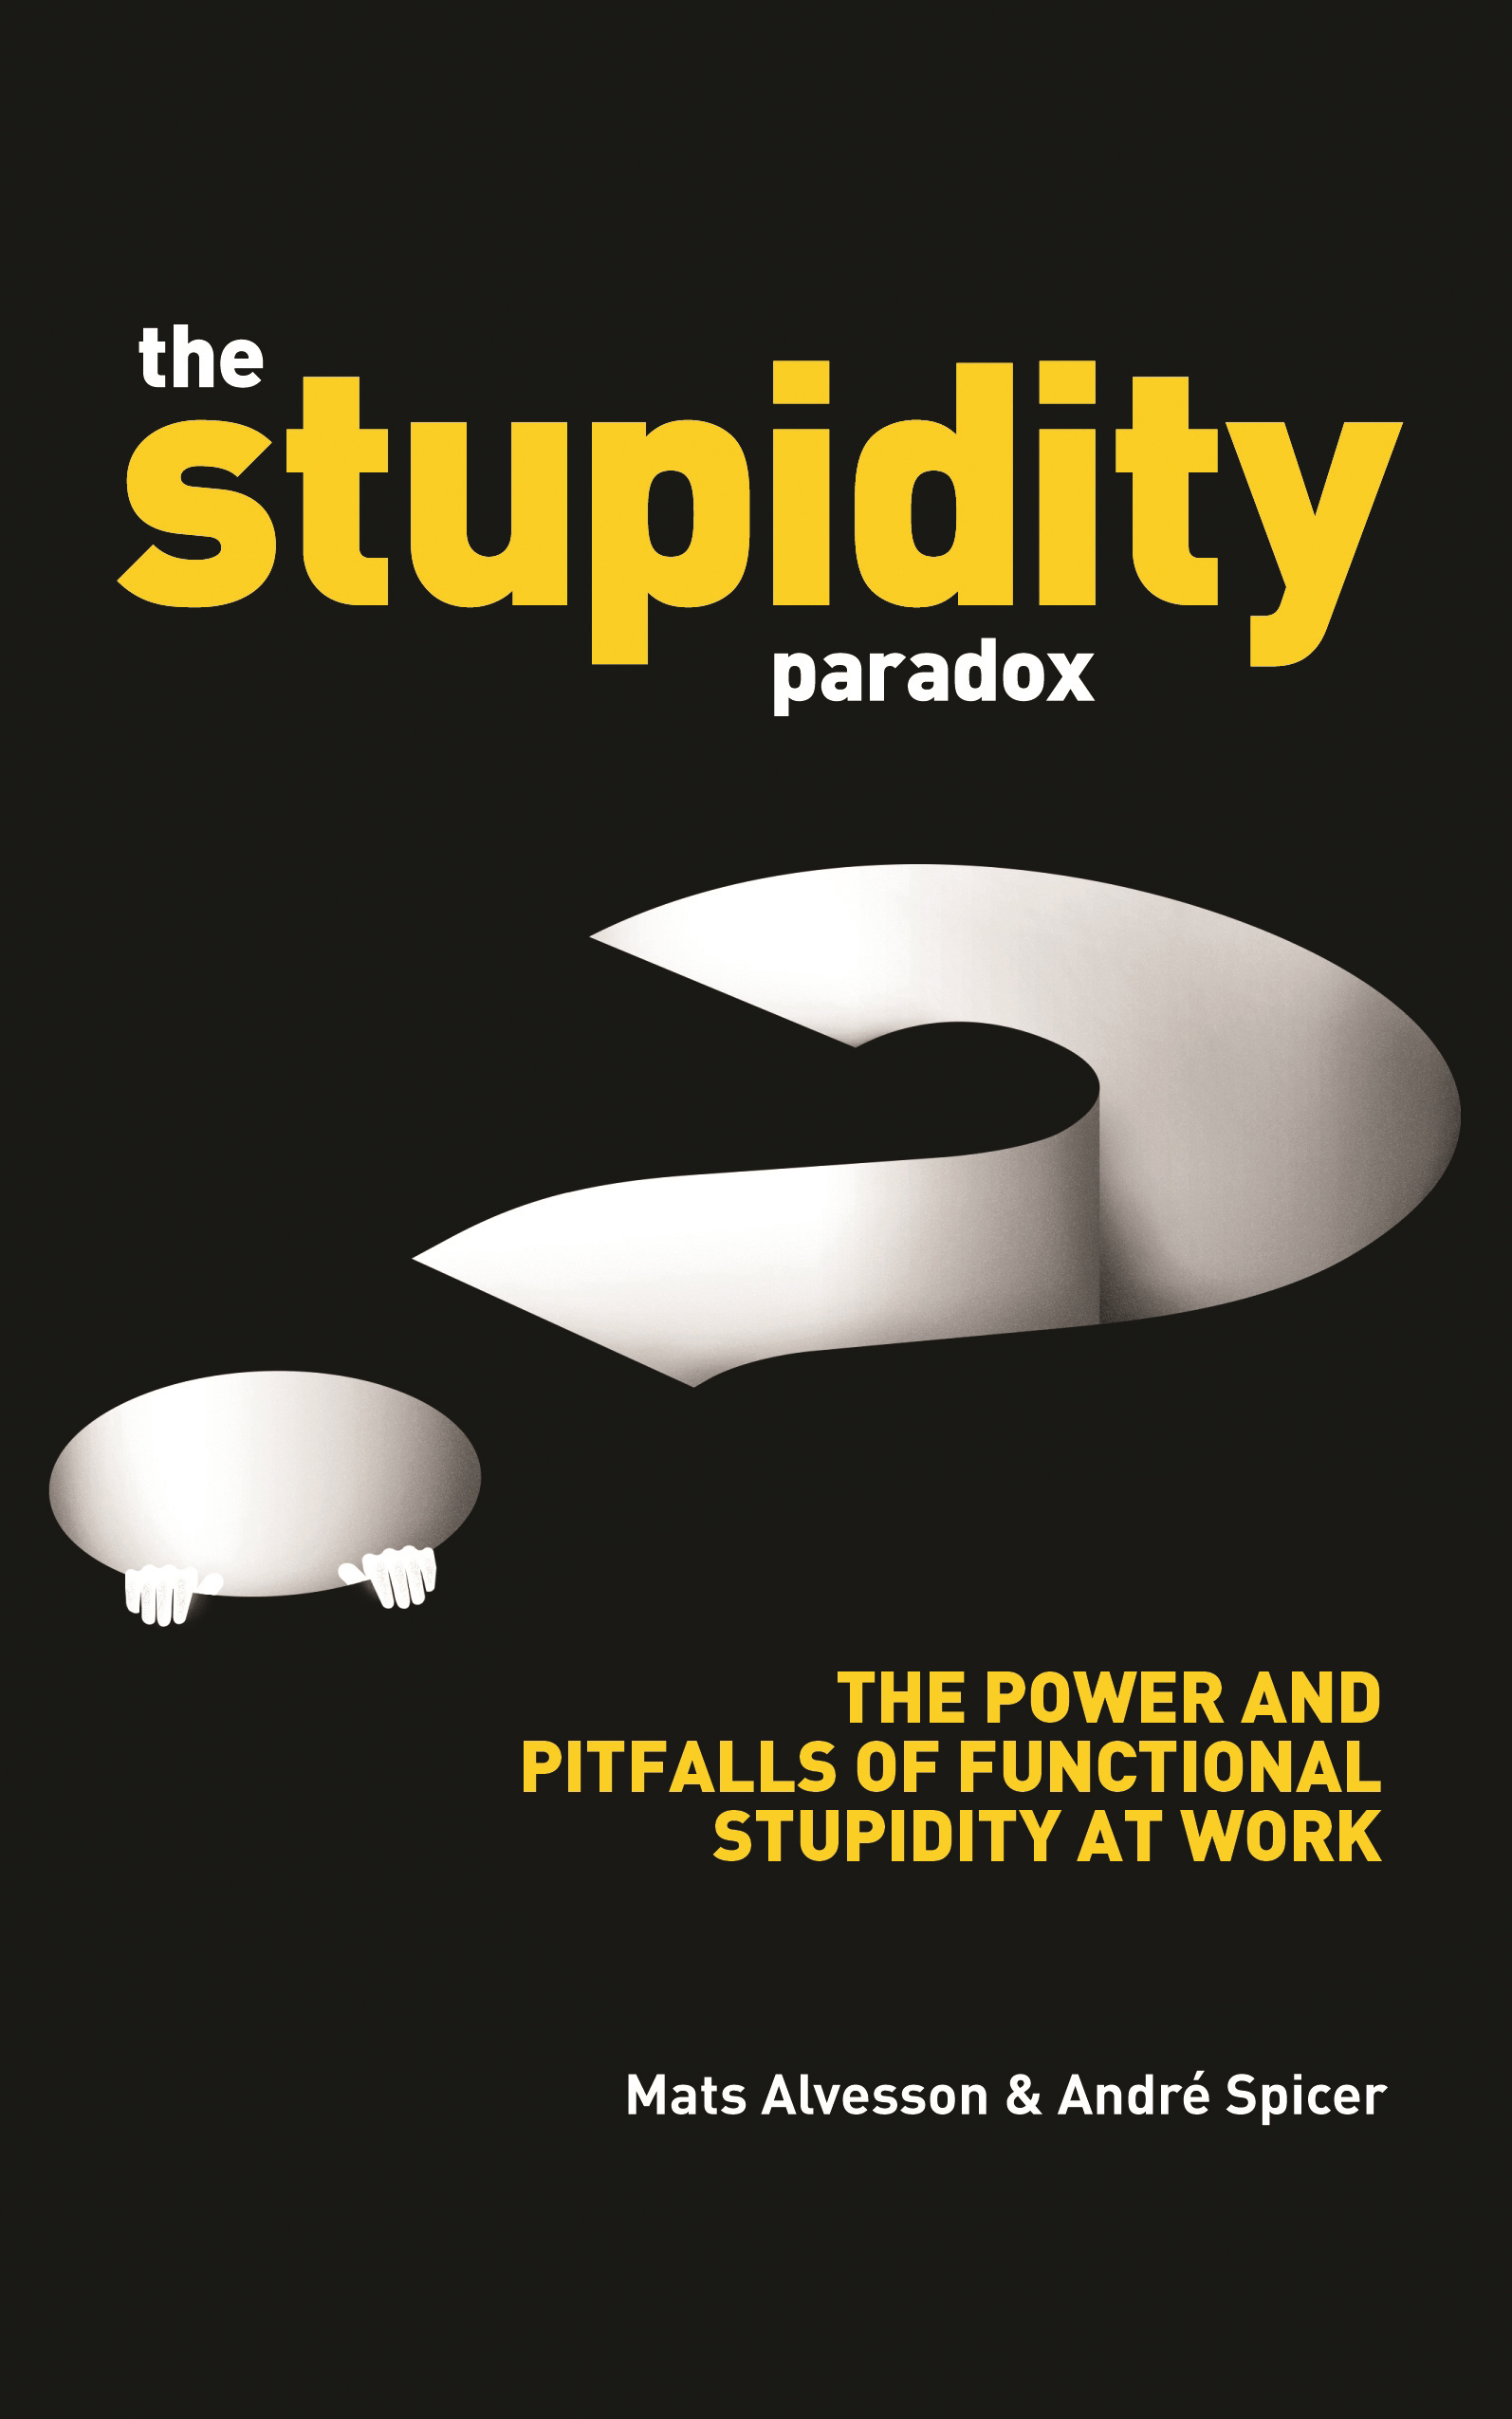 The Stupidity Paradox Mats Alvesson And Andre Spicer